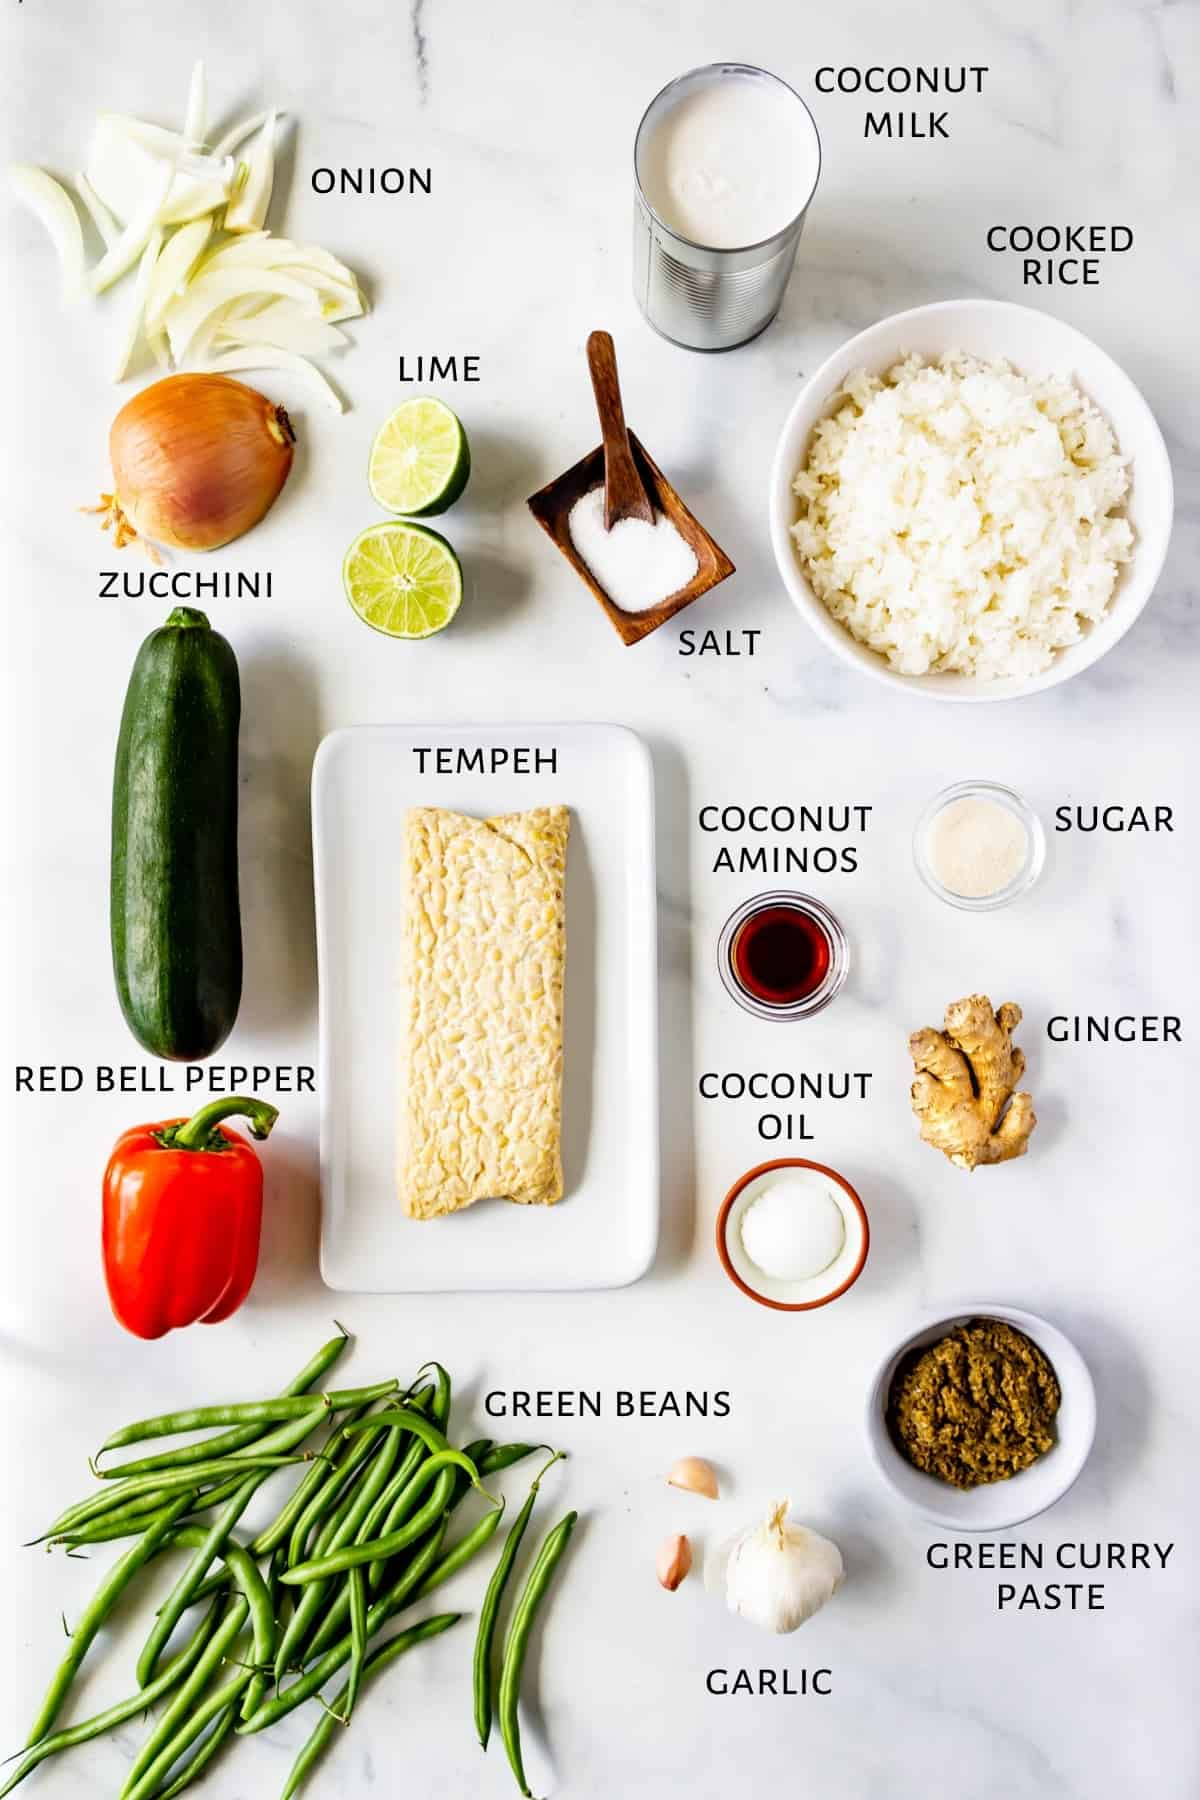 Ingredients for tempeh green curry.